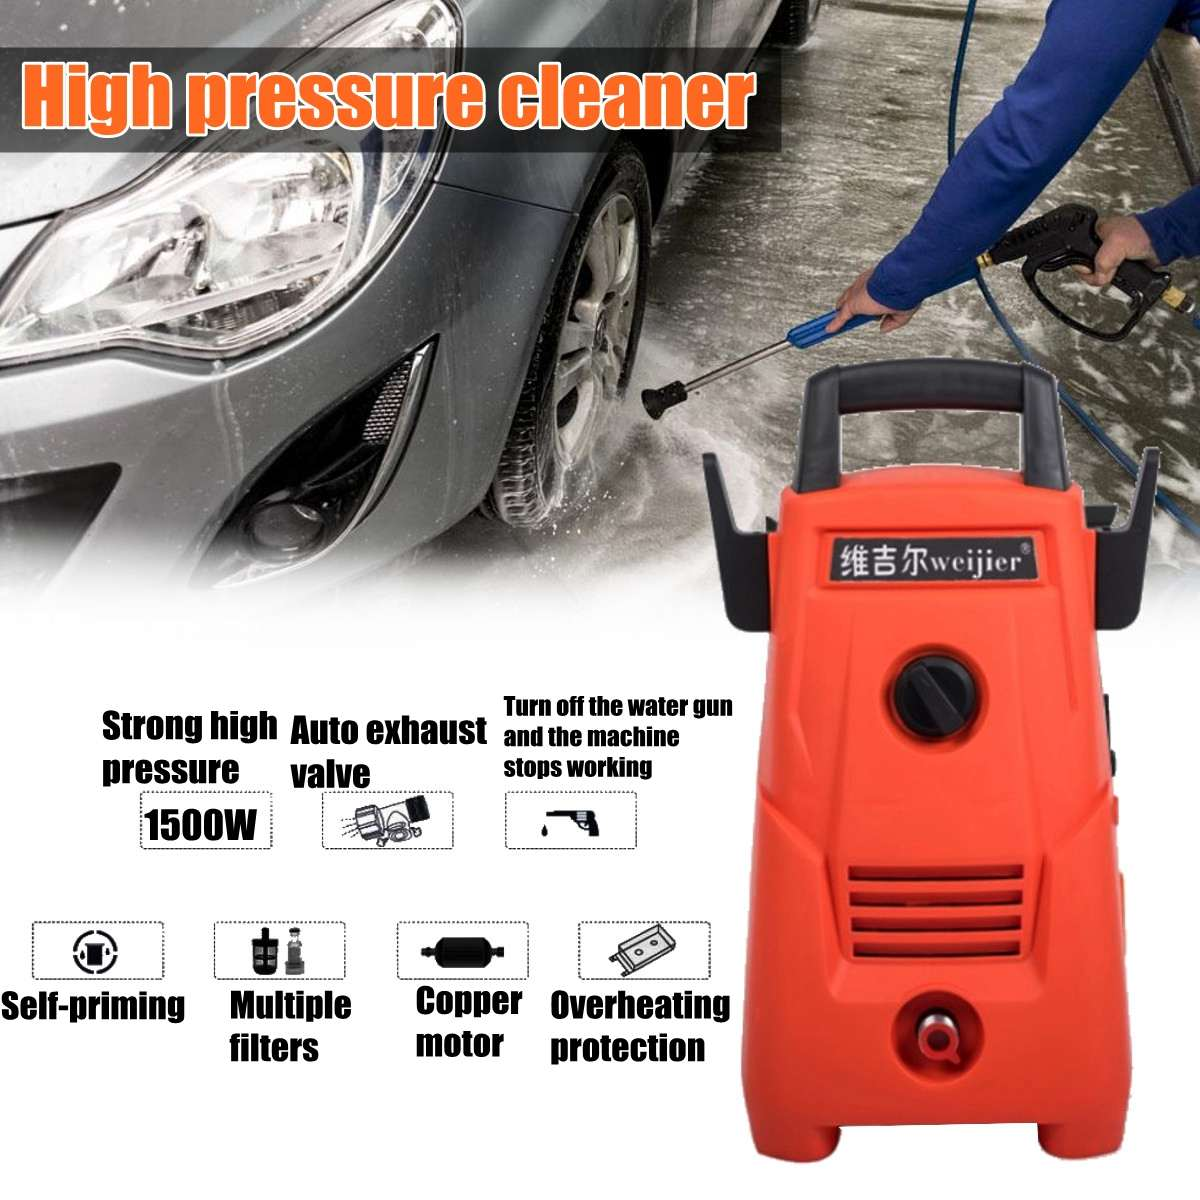 1500W high pressure Household 220v IPX5 Automatic Potable Car Washer Cleaner pump Water G un